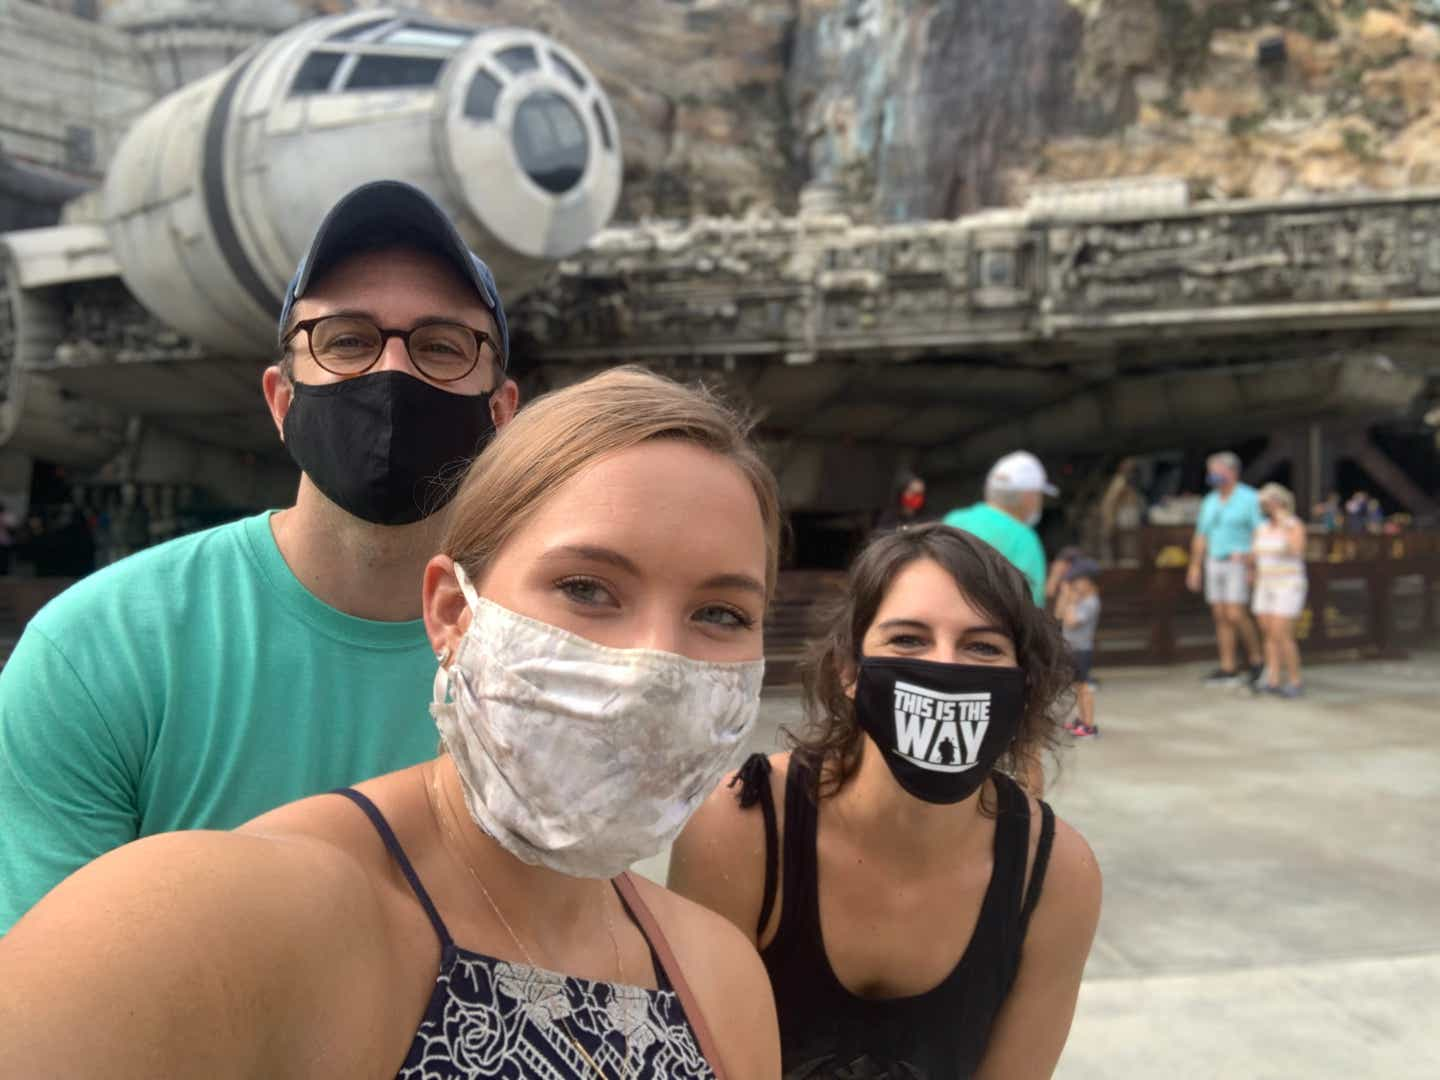 Kelly taking a selfie with James and his sister